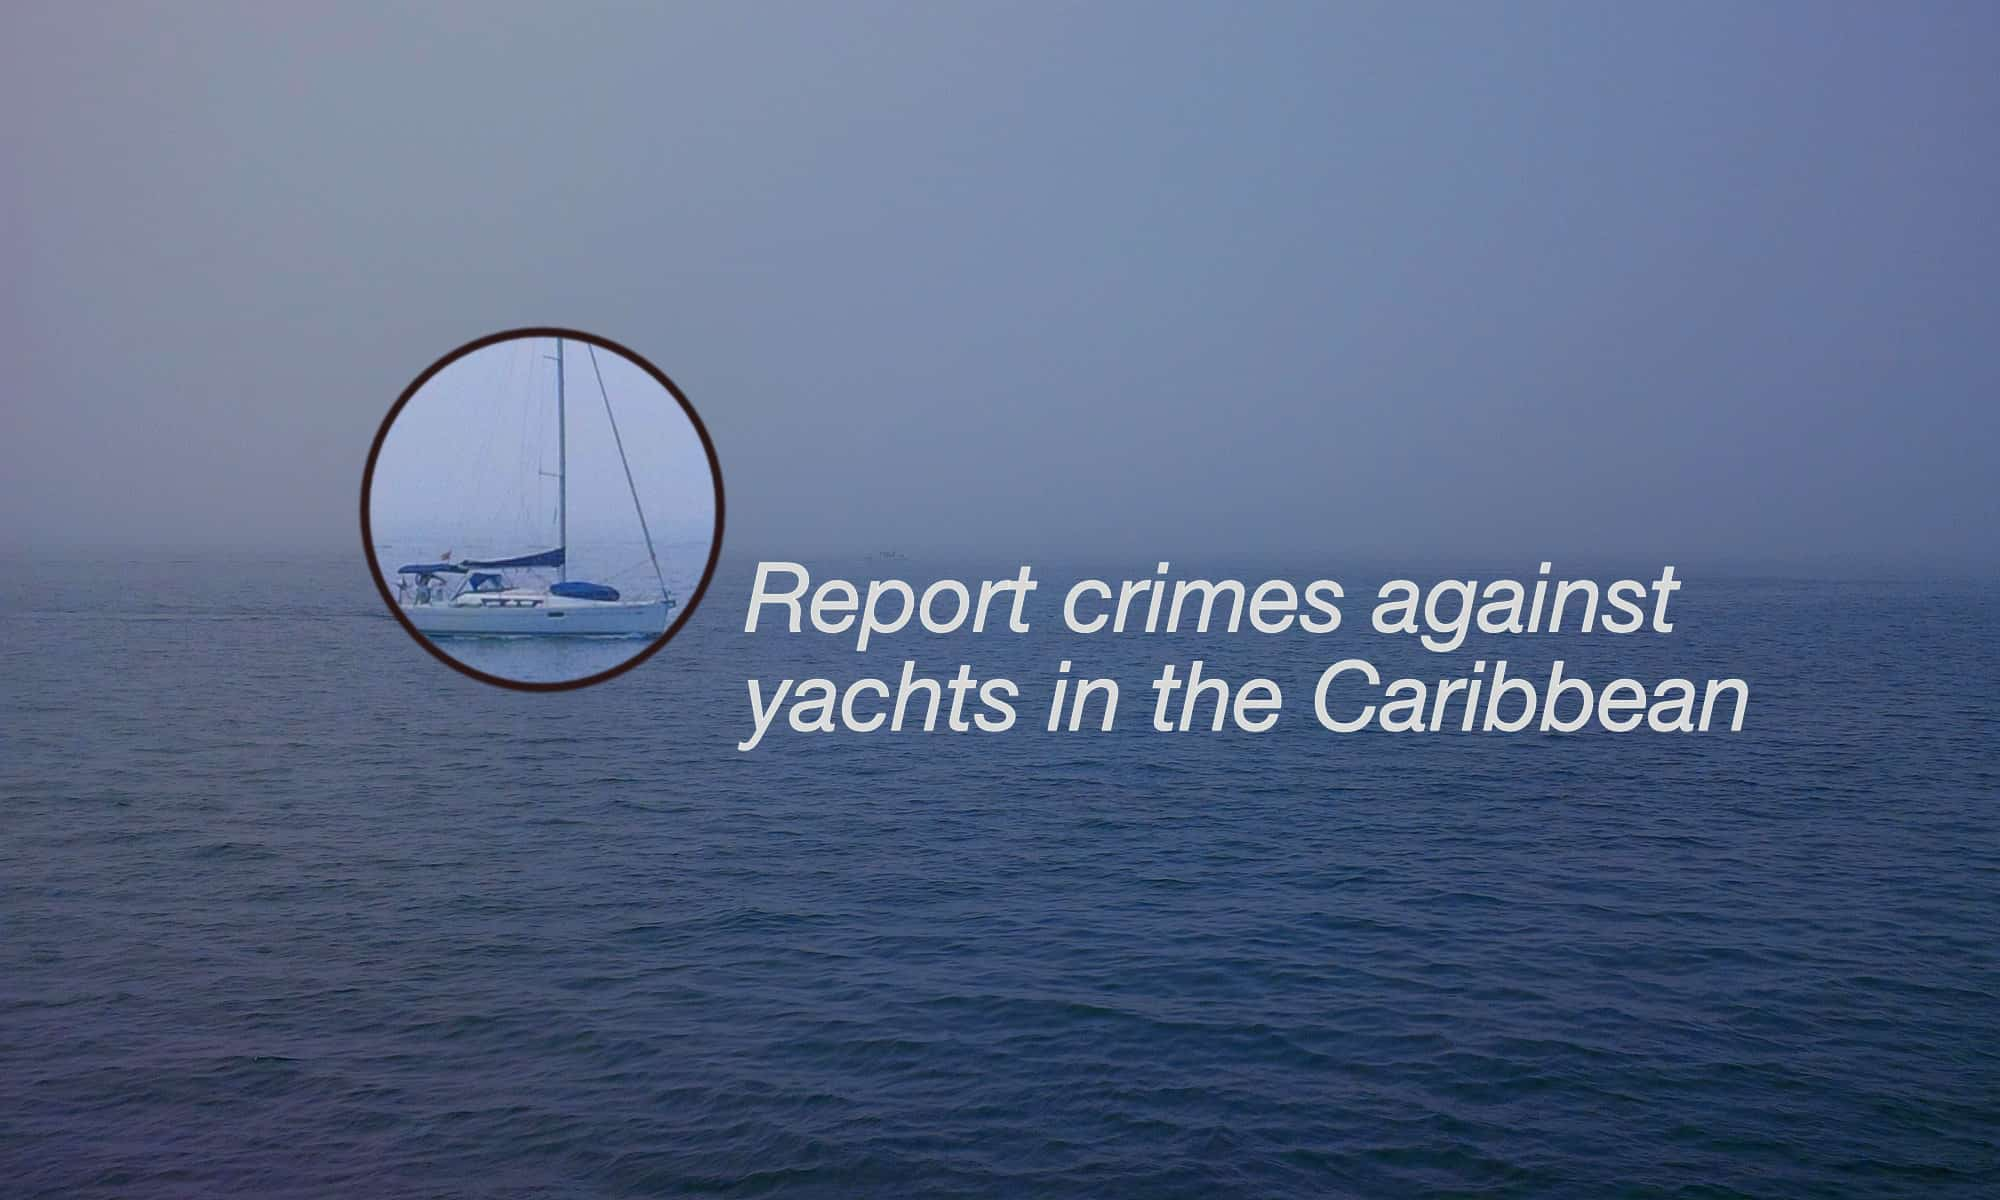 Report crimes against yachts in the Caribbean